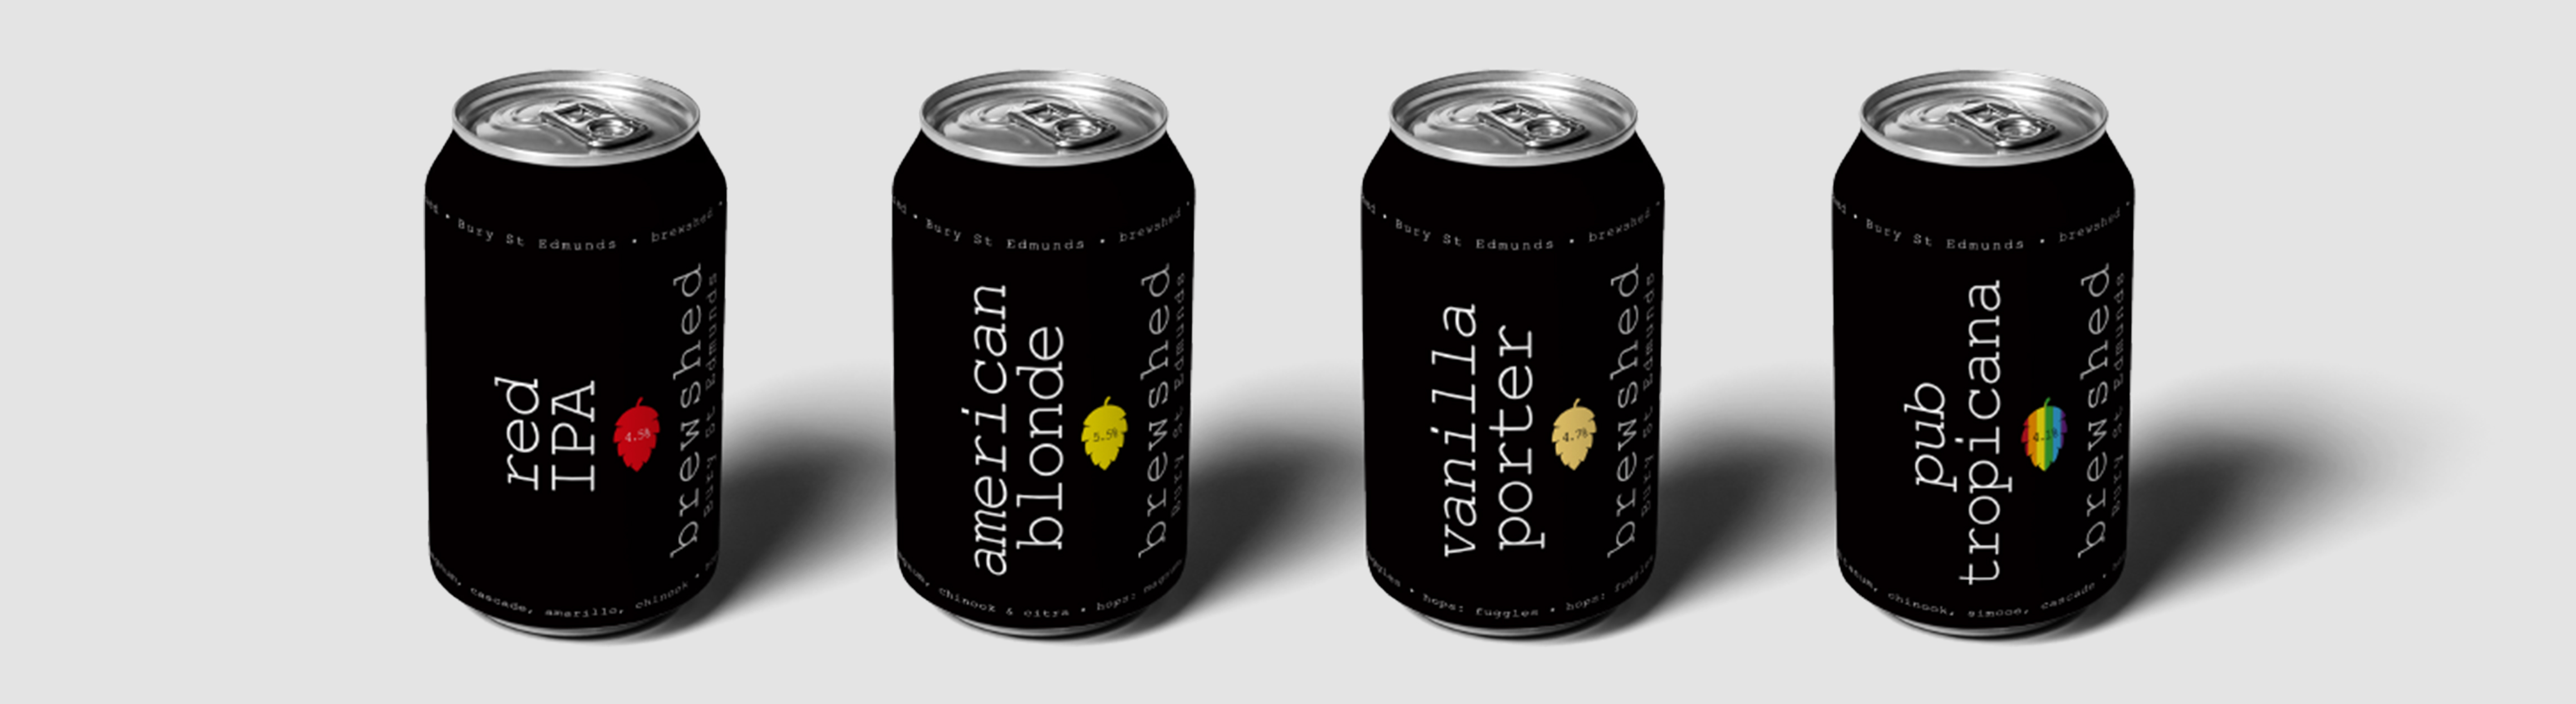 Brewshed Cans